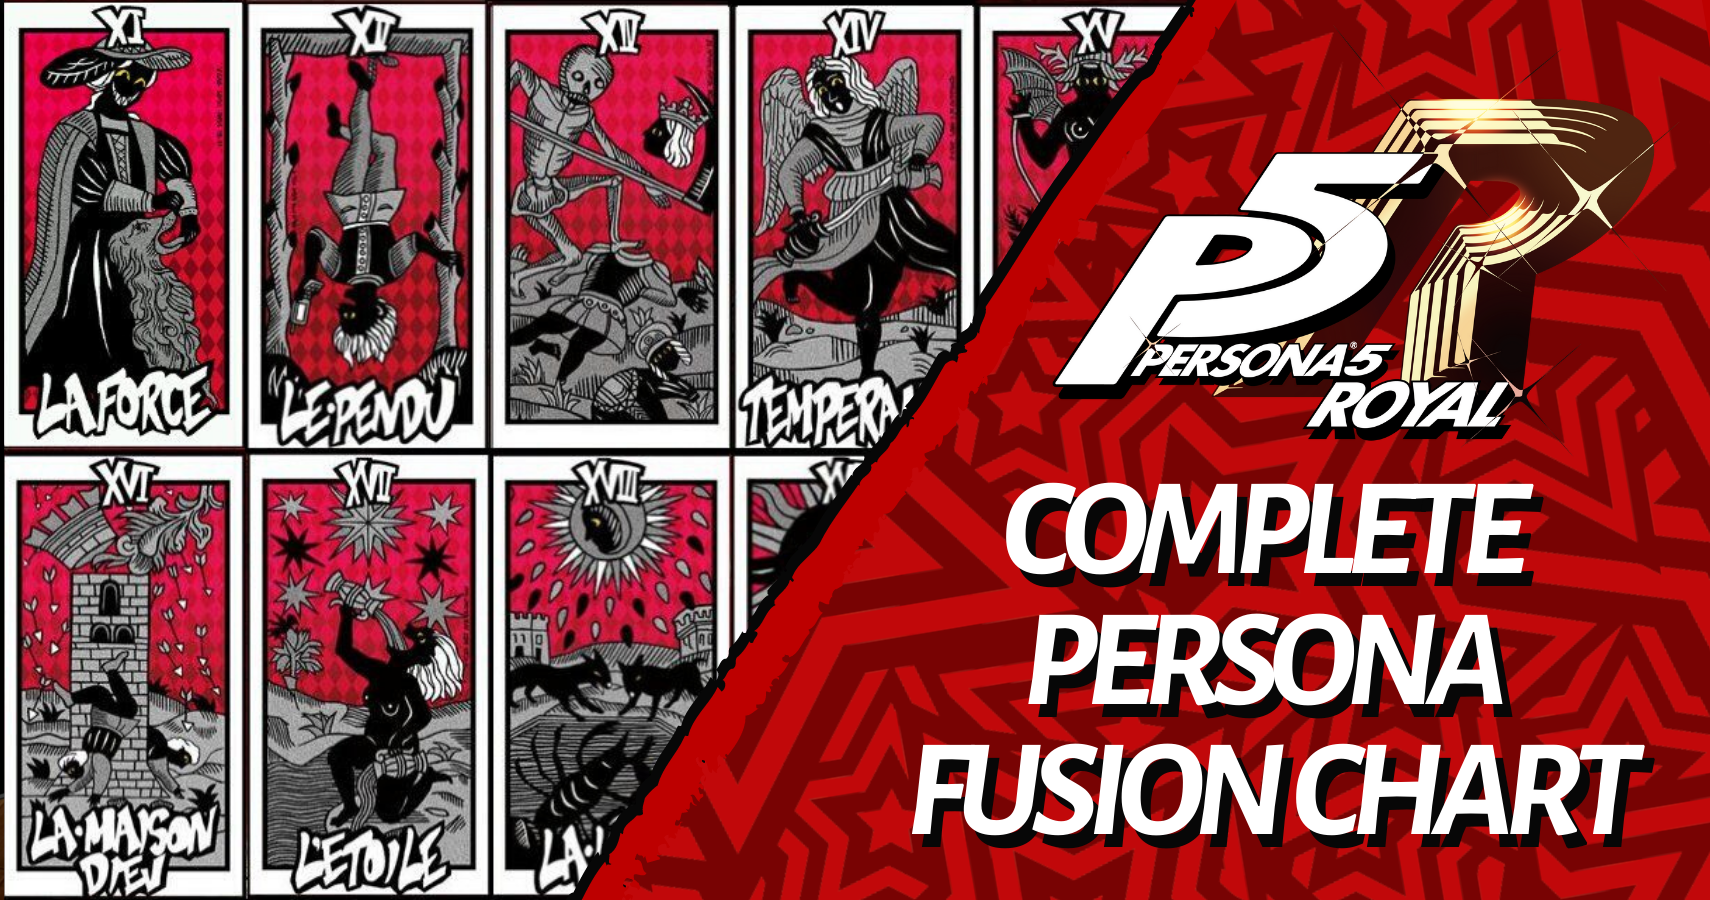 Persona 5 Royal Complete Persona Fusion Chart And Fusion Guide